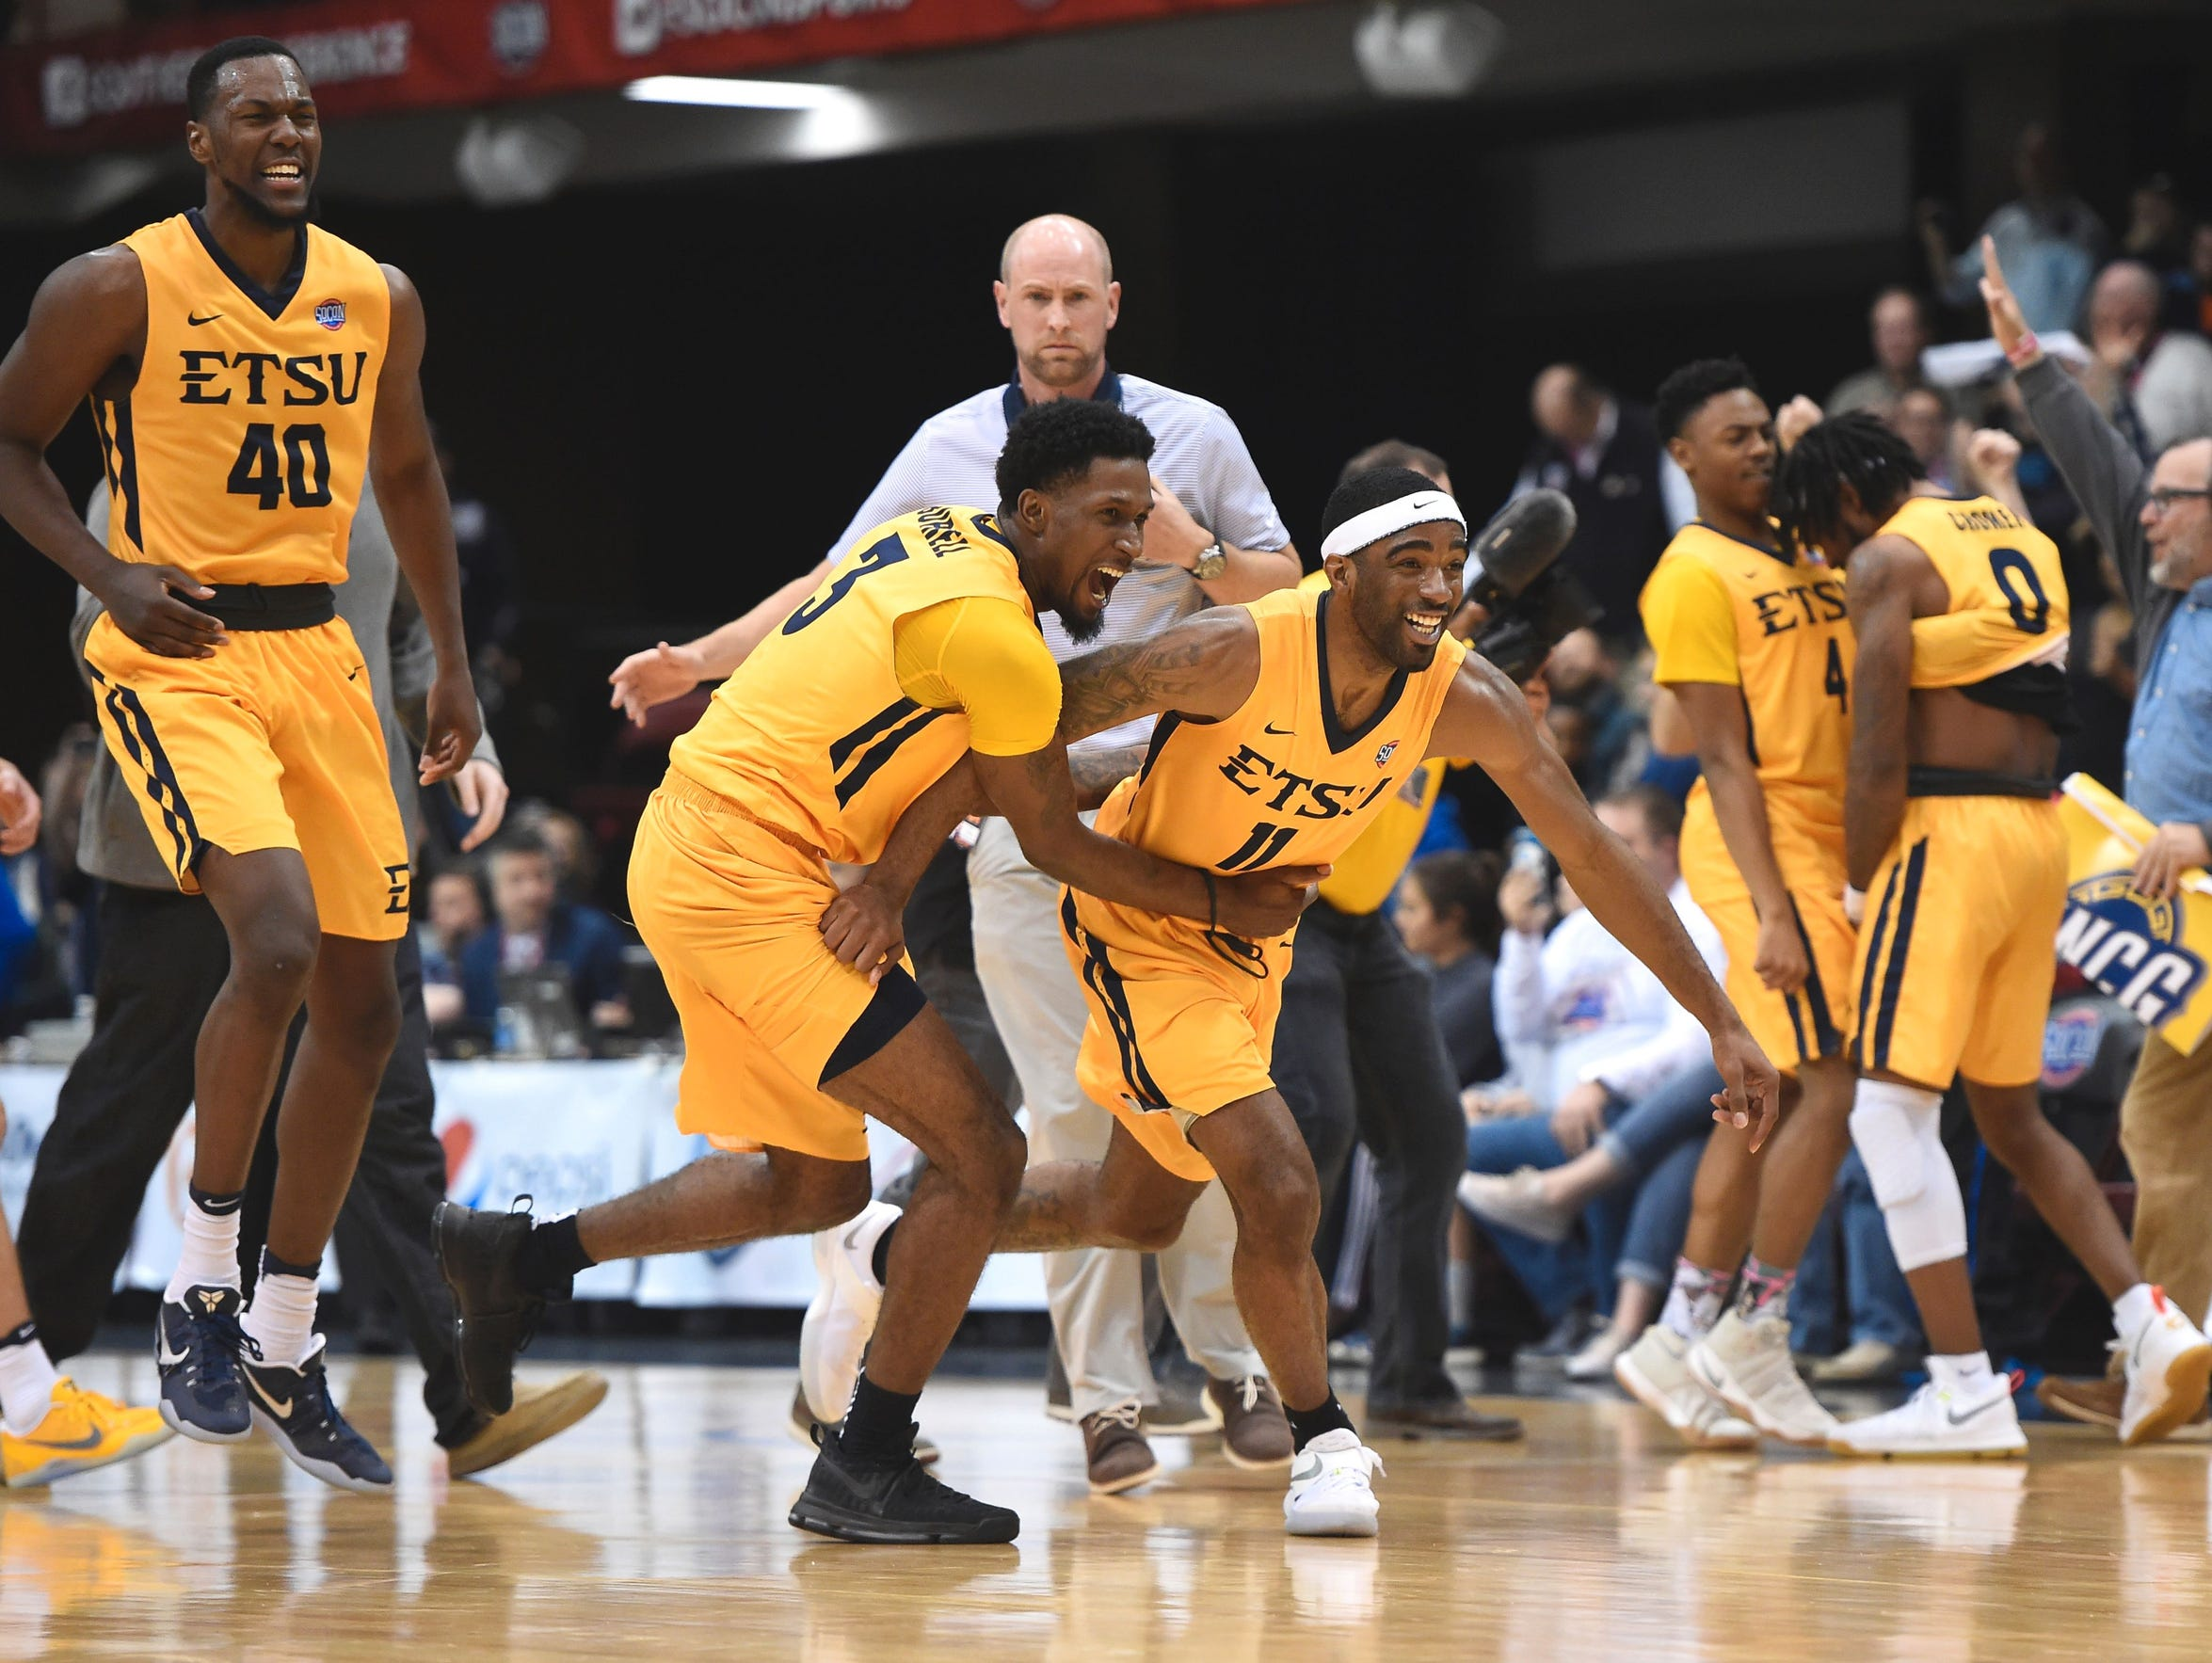 East Tennessee State's forwards Tevin Glass (40), David